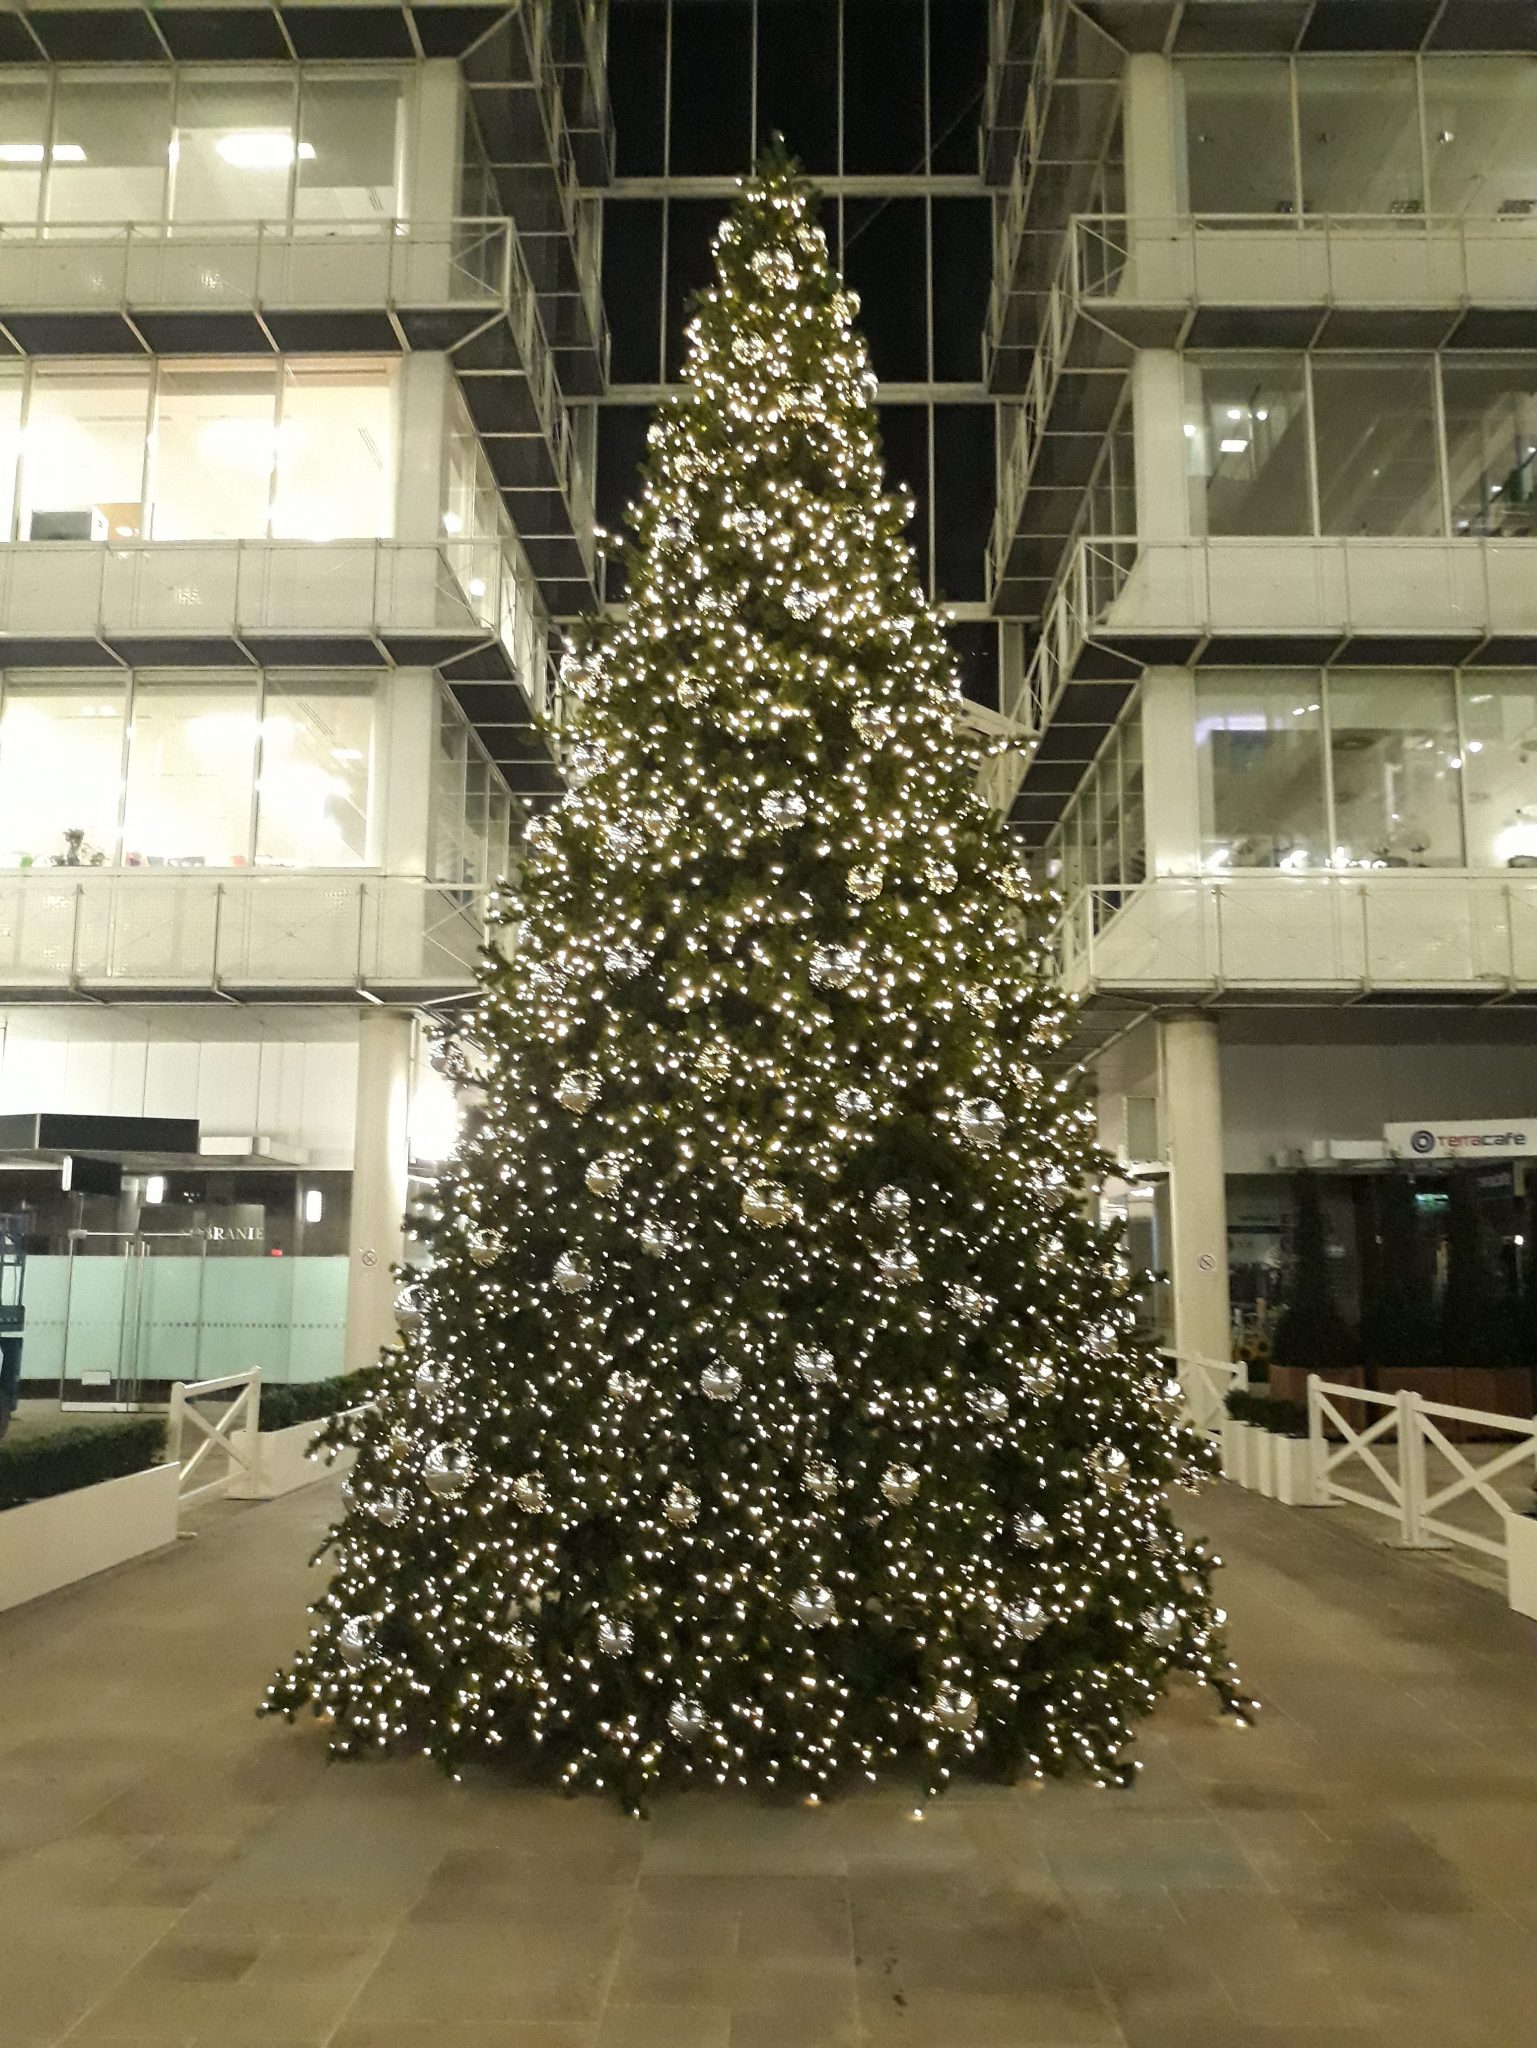 Large commercial Christmas tree with lights and baubles